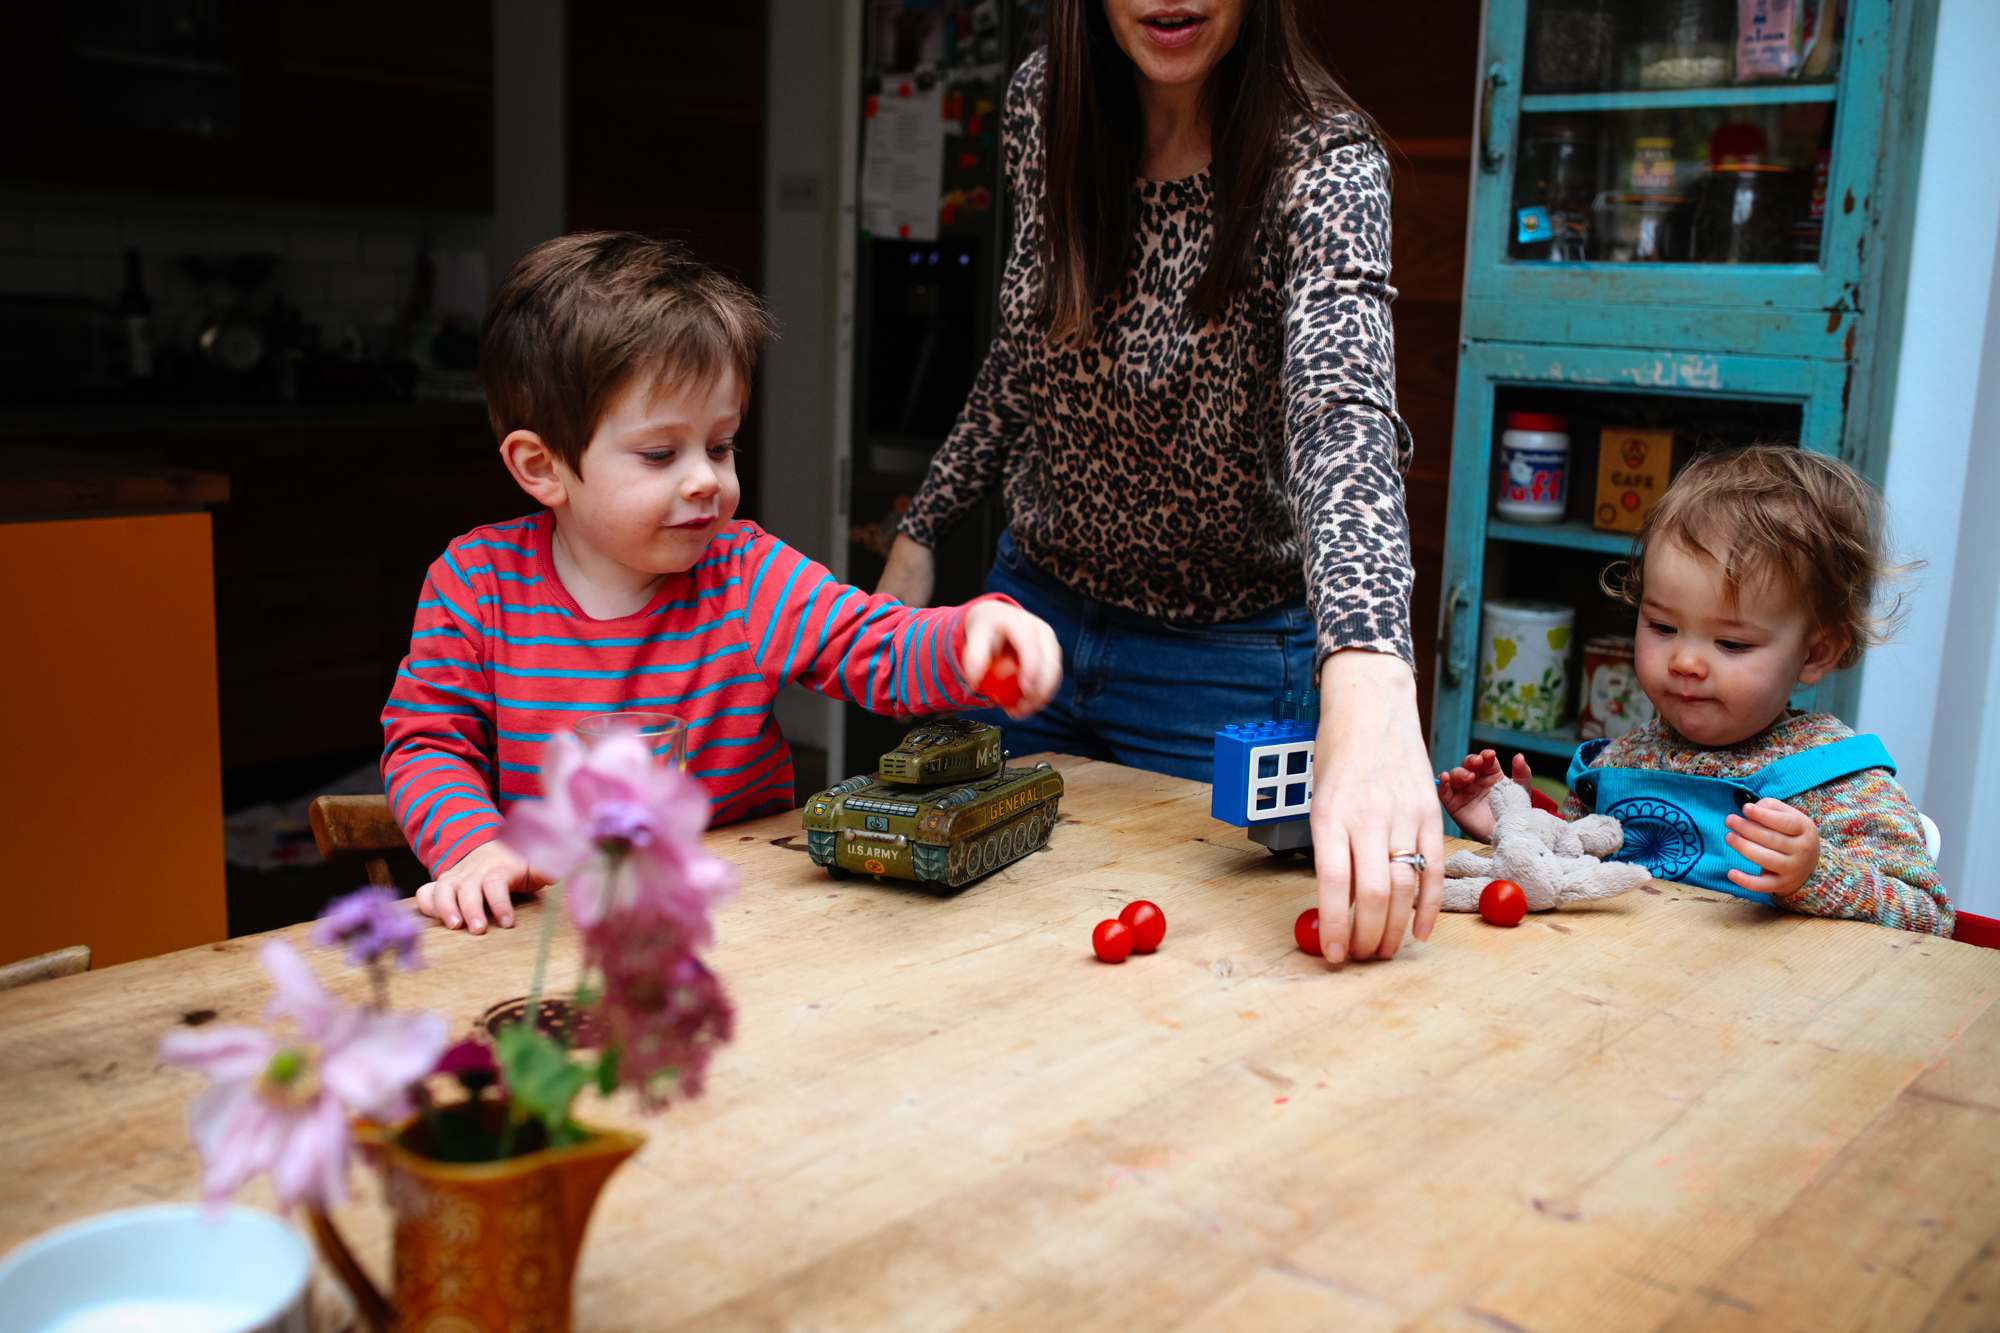 family lifestyle photography at home. London Children Photography